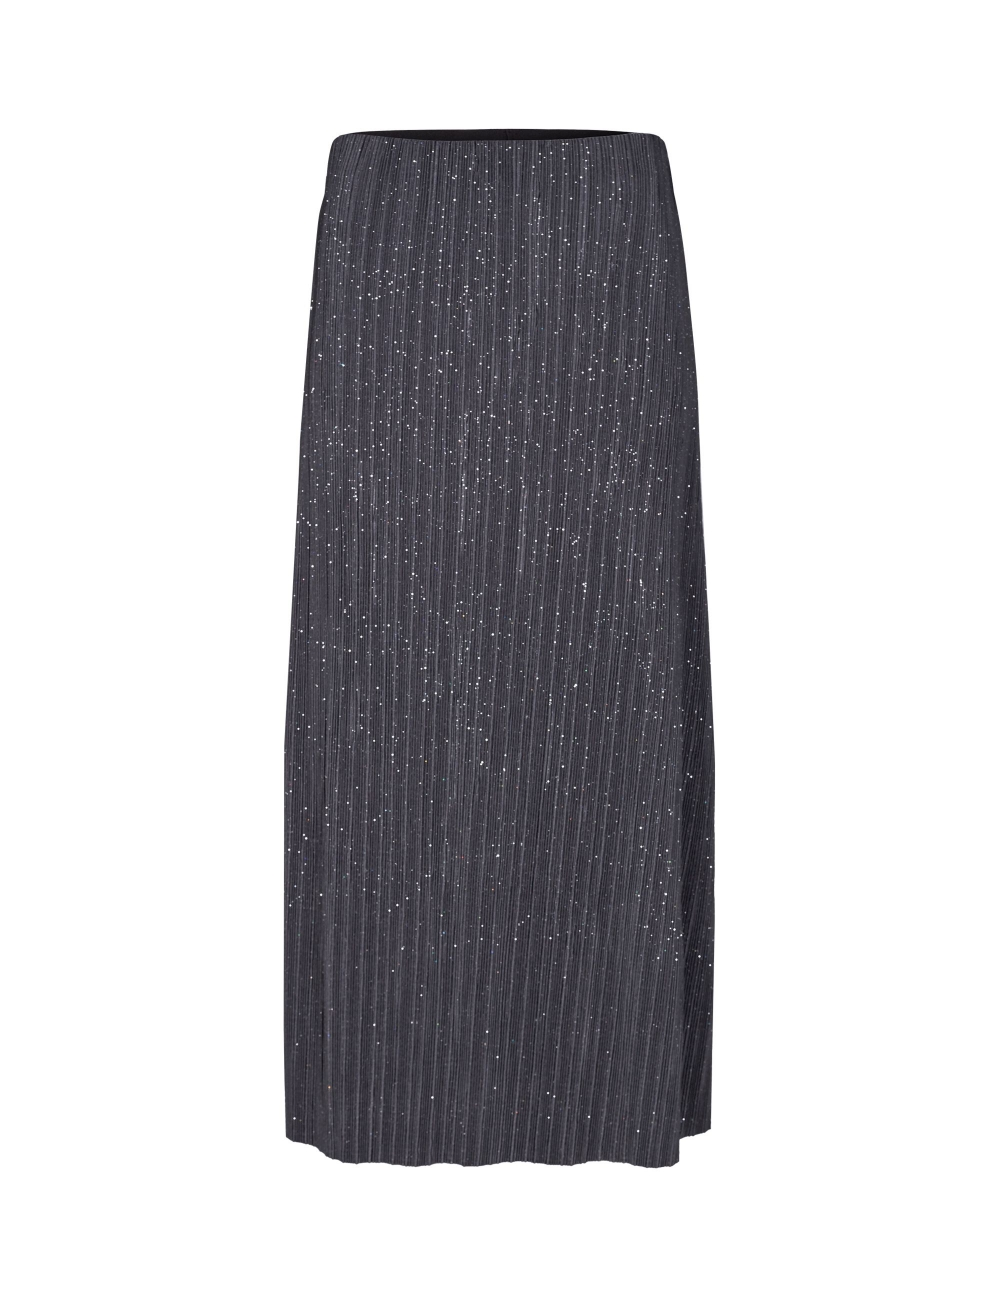 Levete Room Livana Skirt